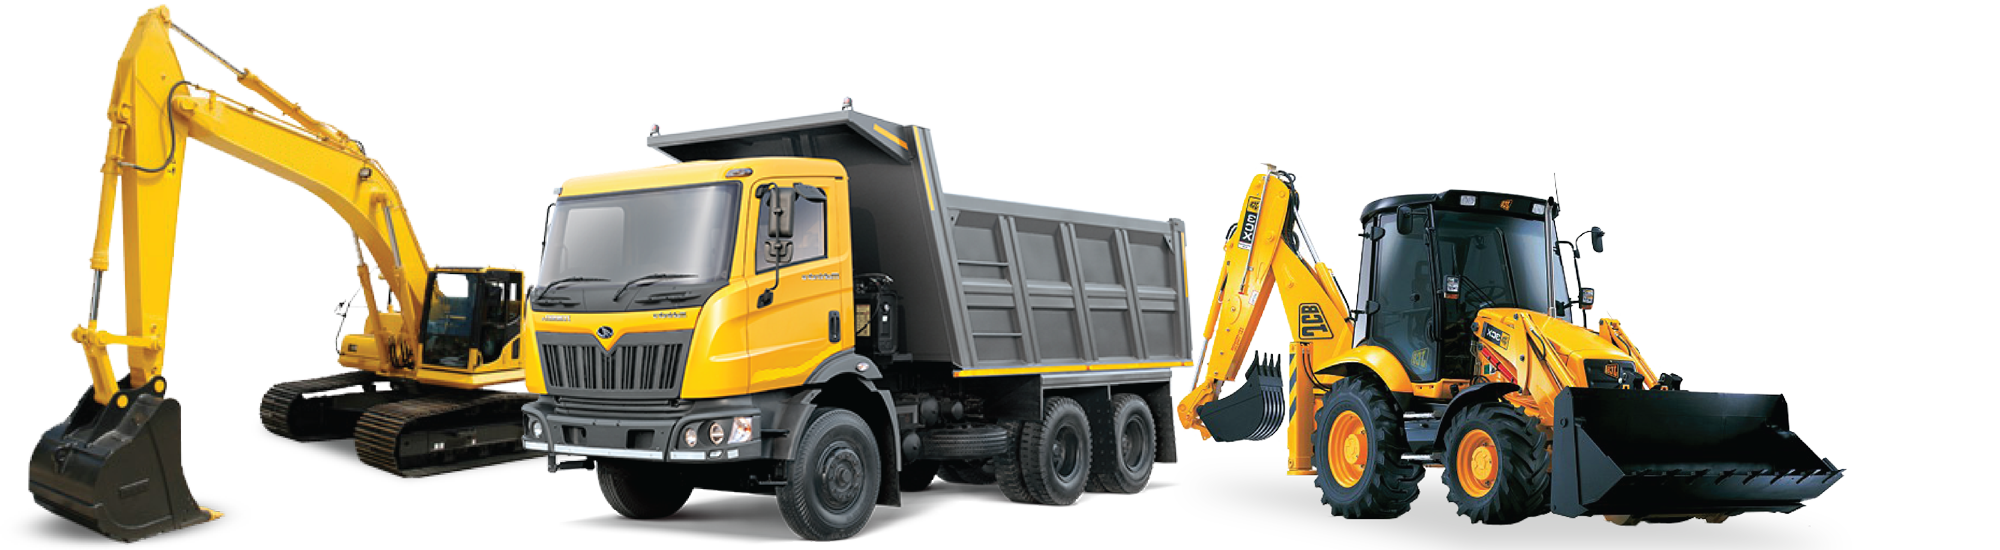 construction equipment png